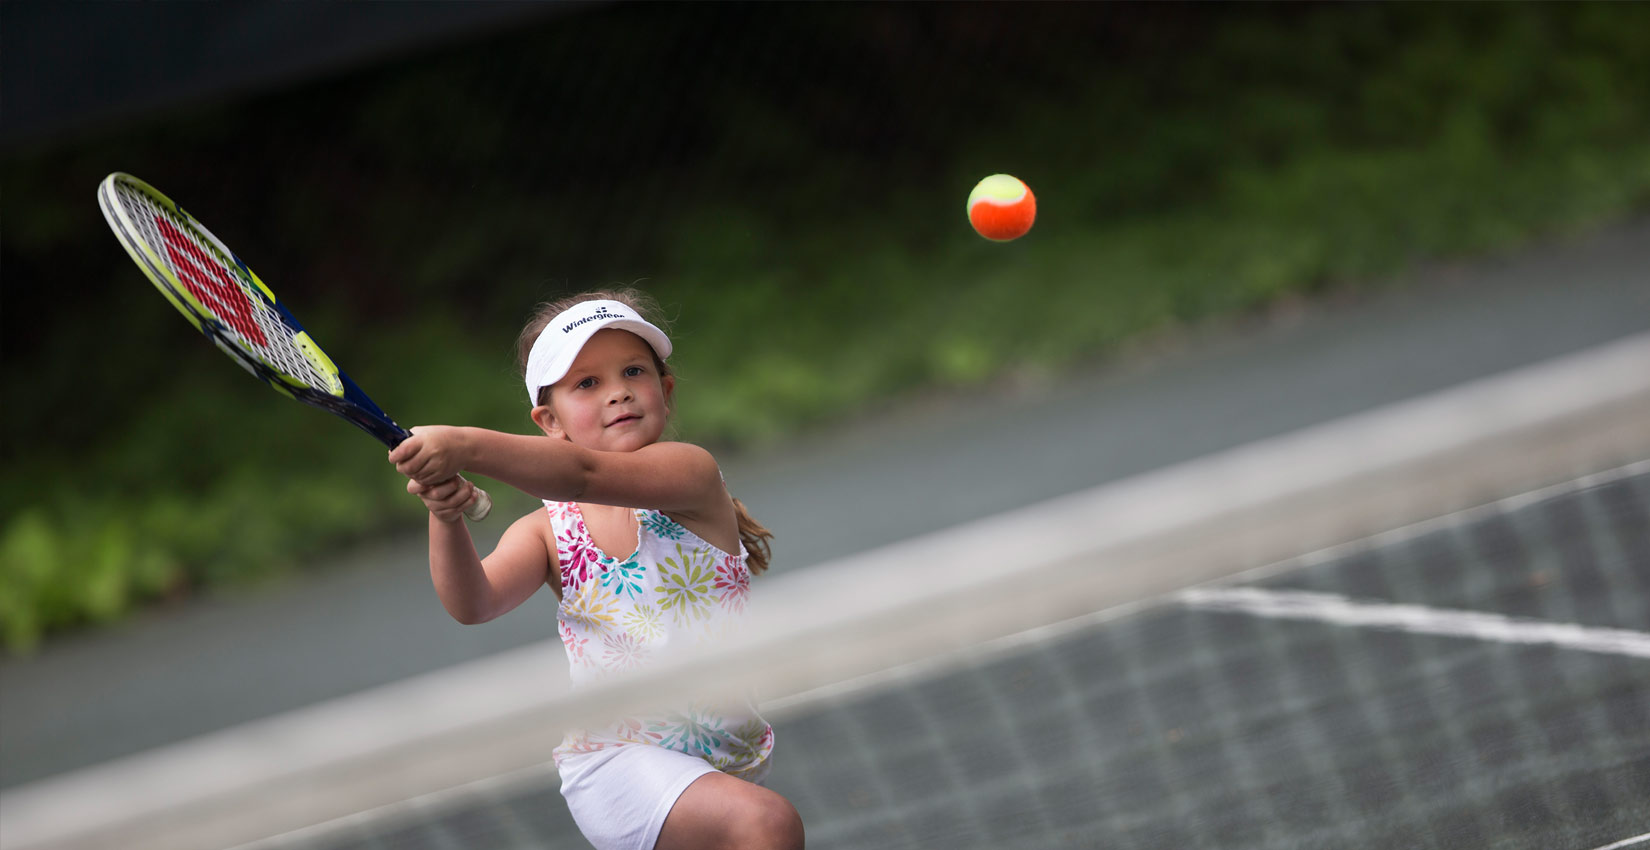 Top Tips For Kids To Improve Your Tennis Game Don't Be Reckless With Your Shots